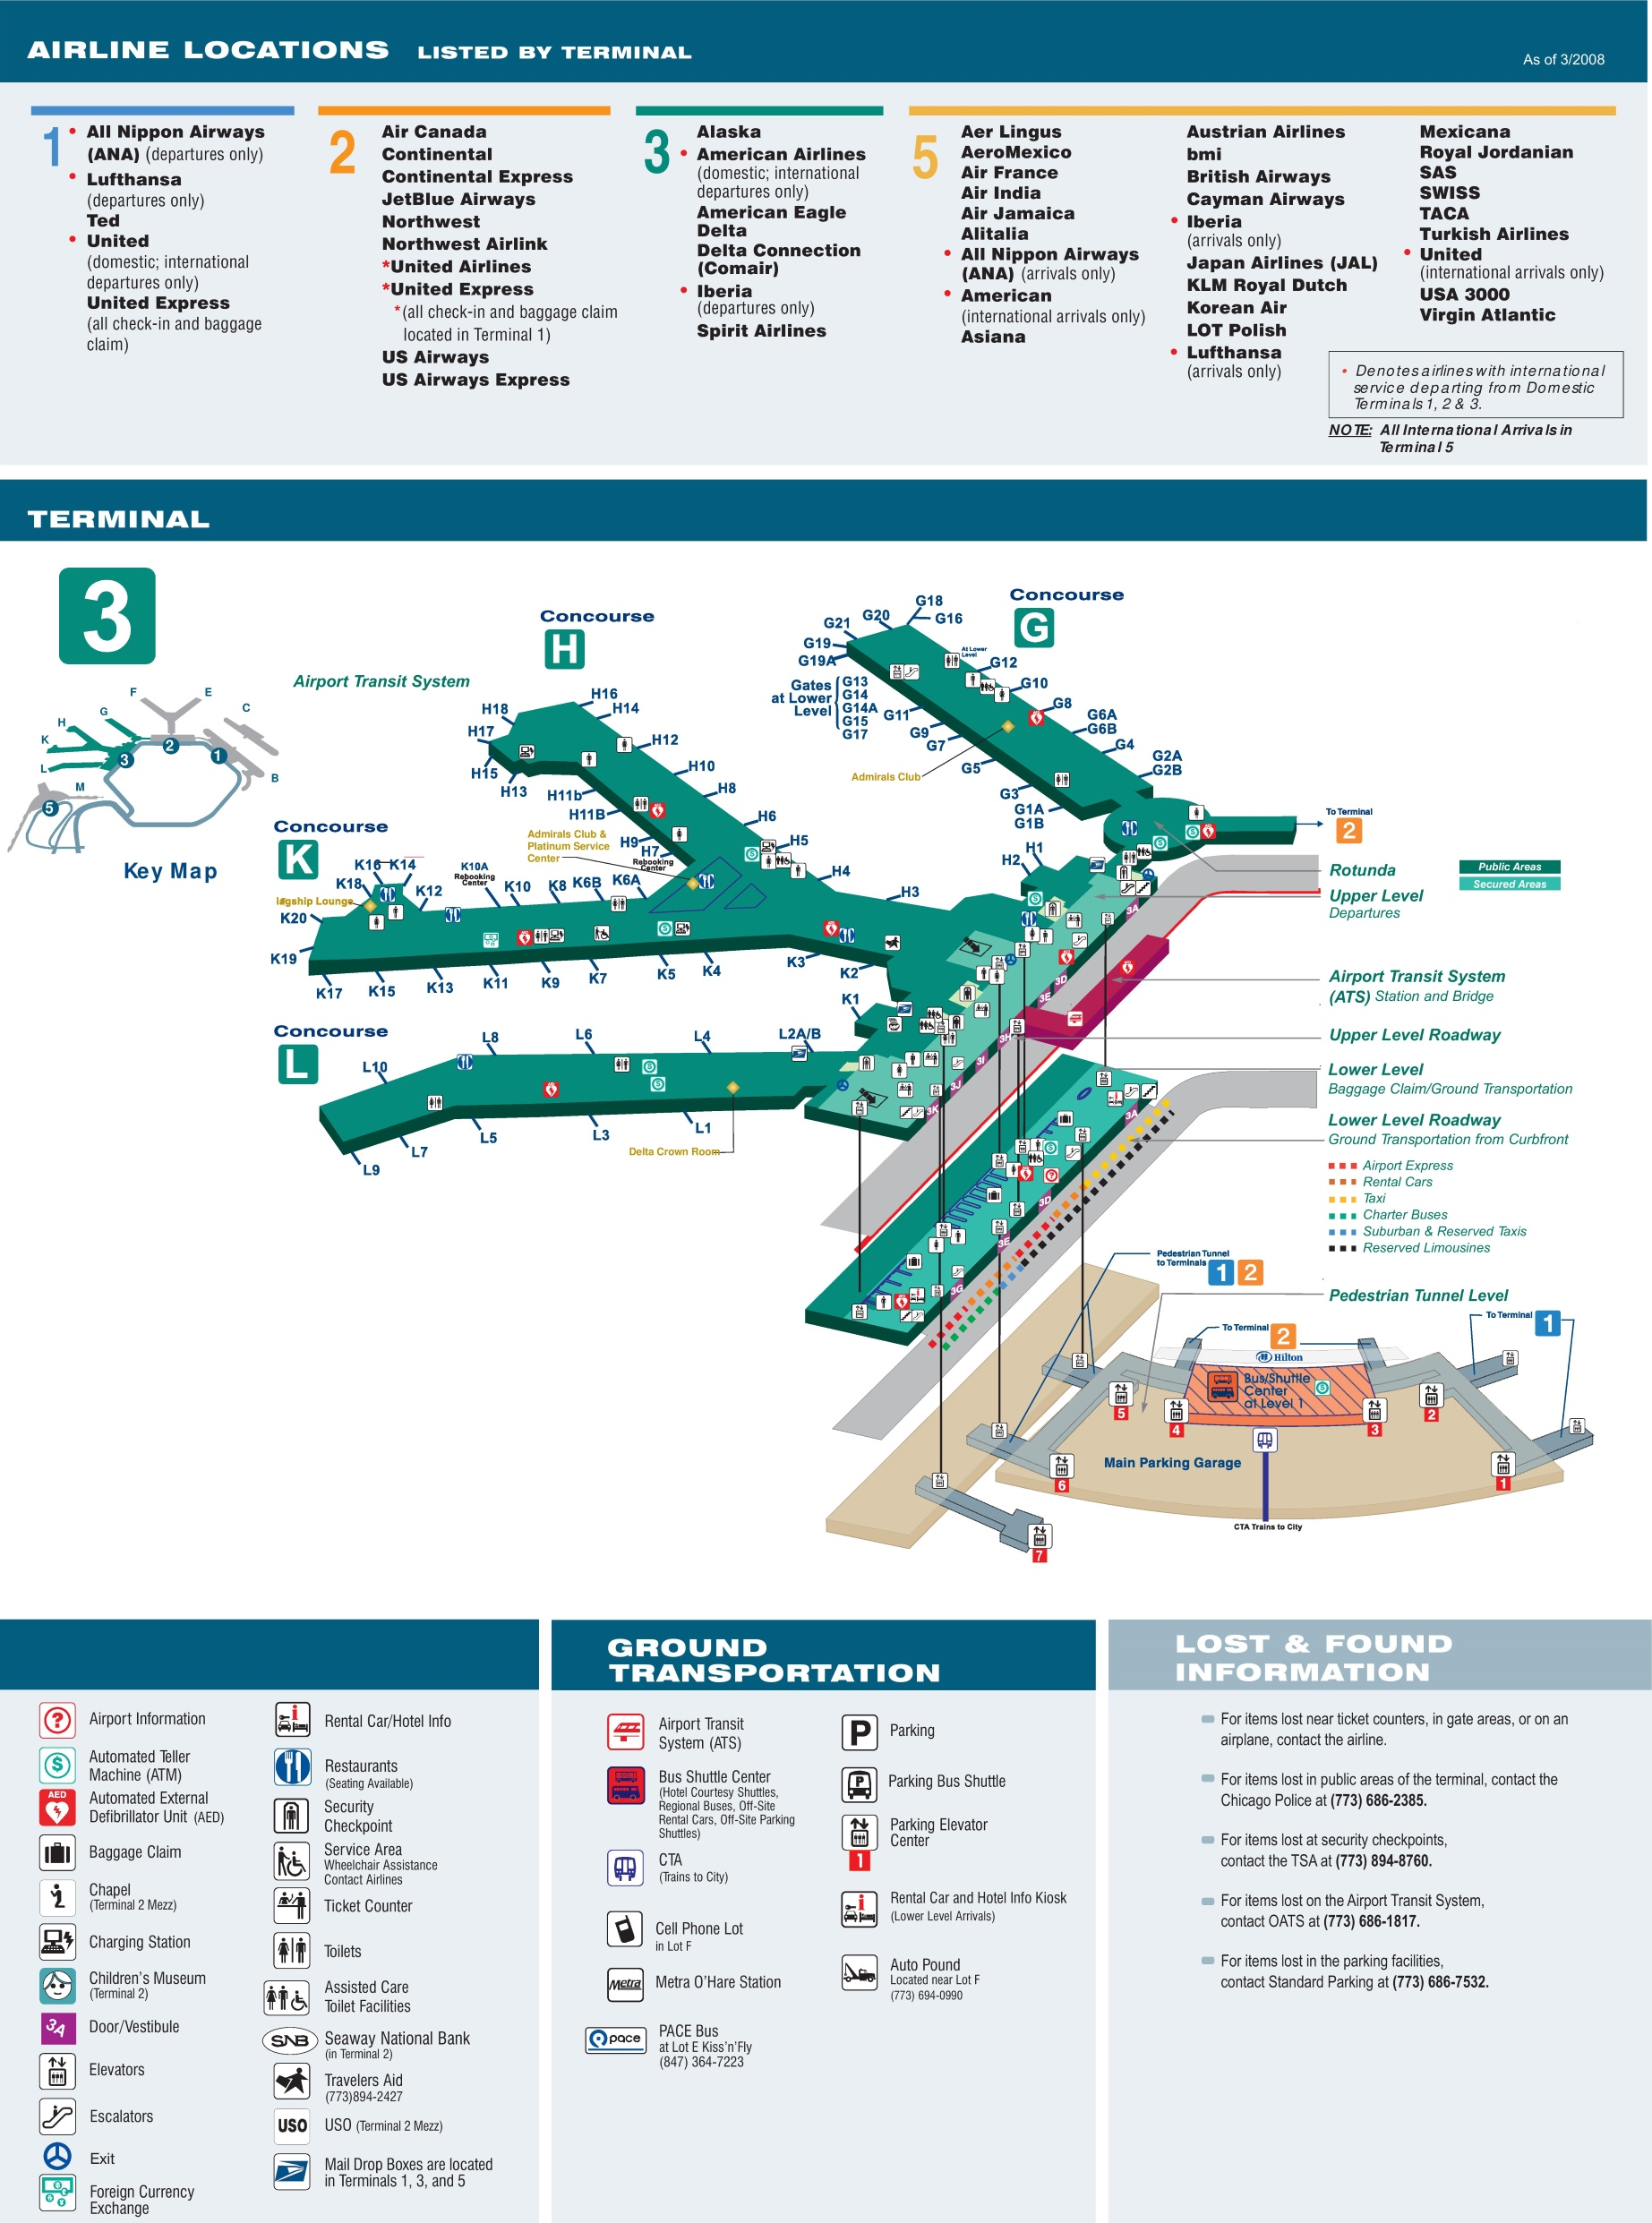 OHare Airport terminal 3 map